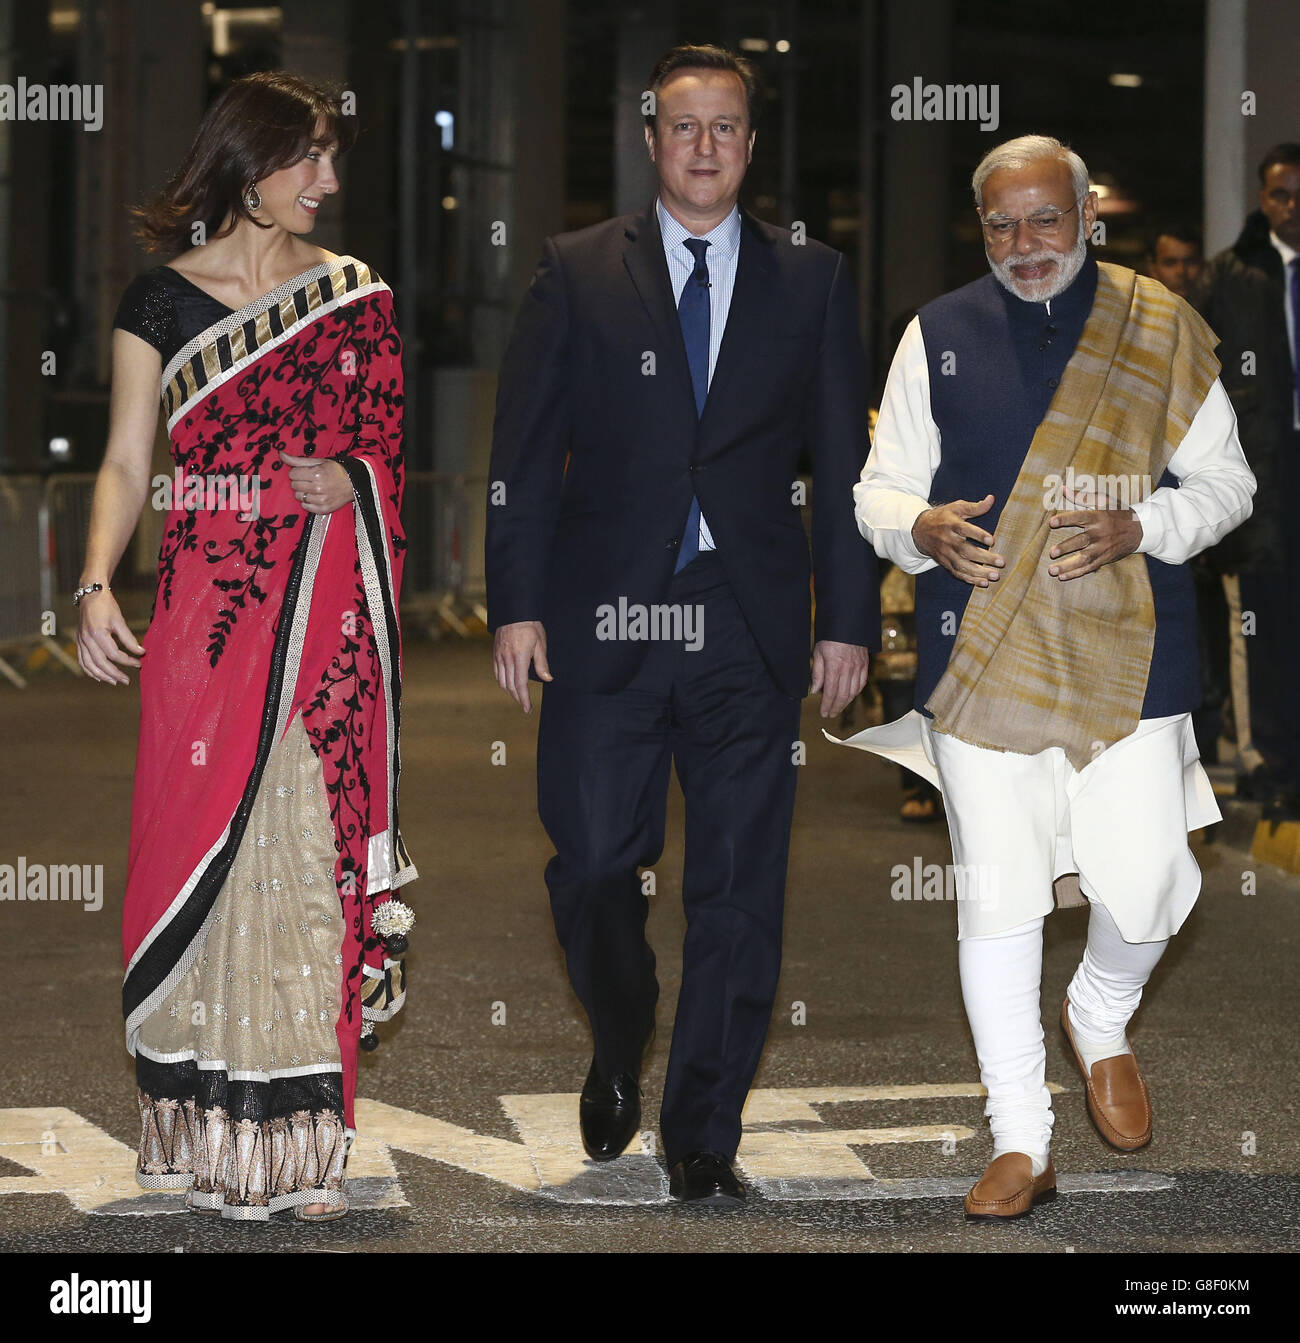 Indian Prime Minister visit to UK - Day Two - Stock Image